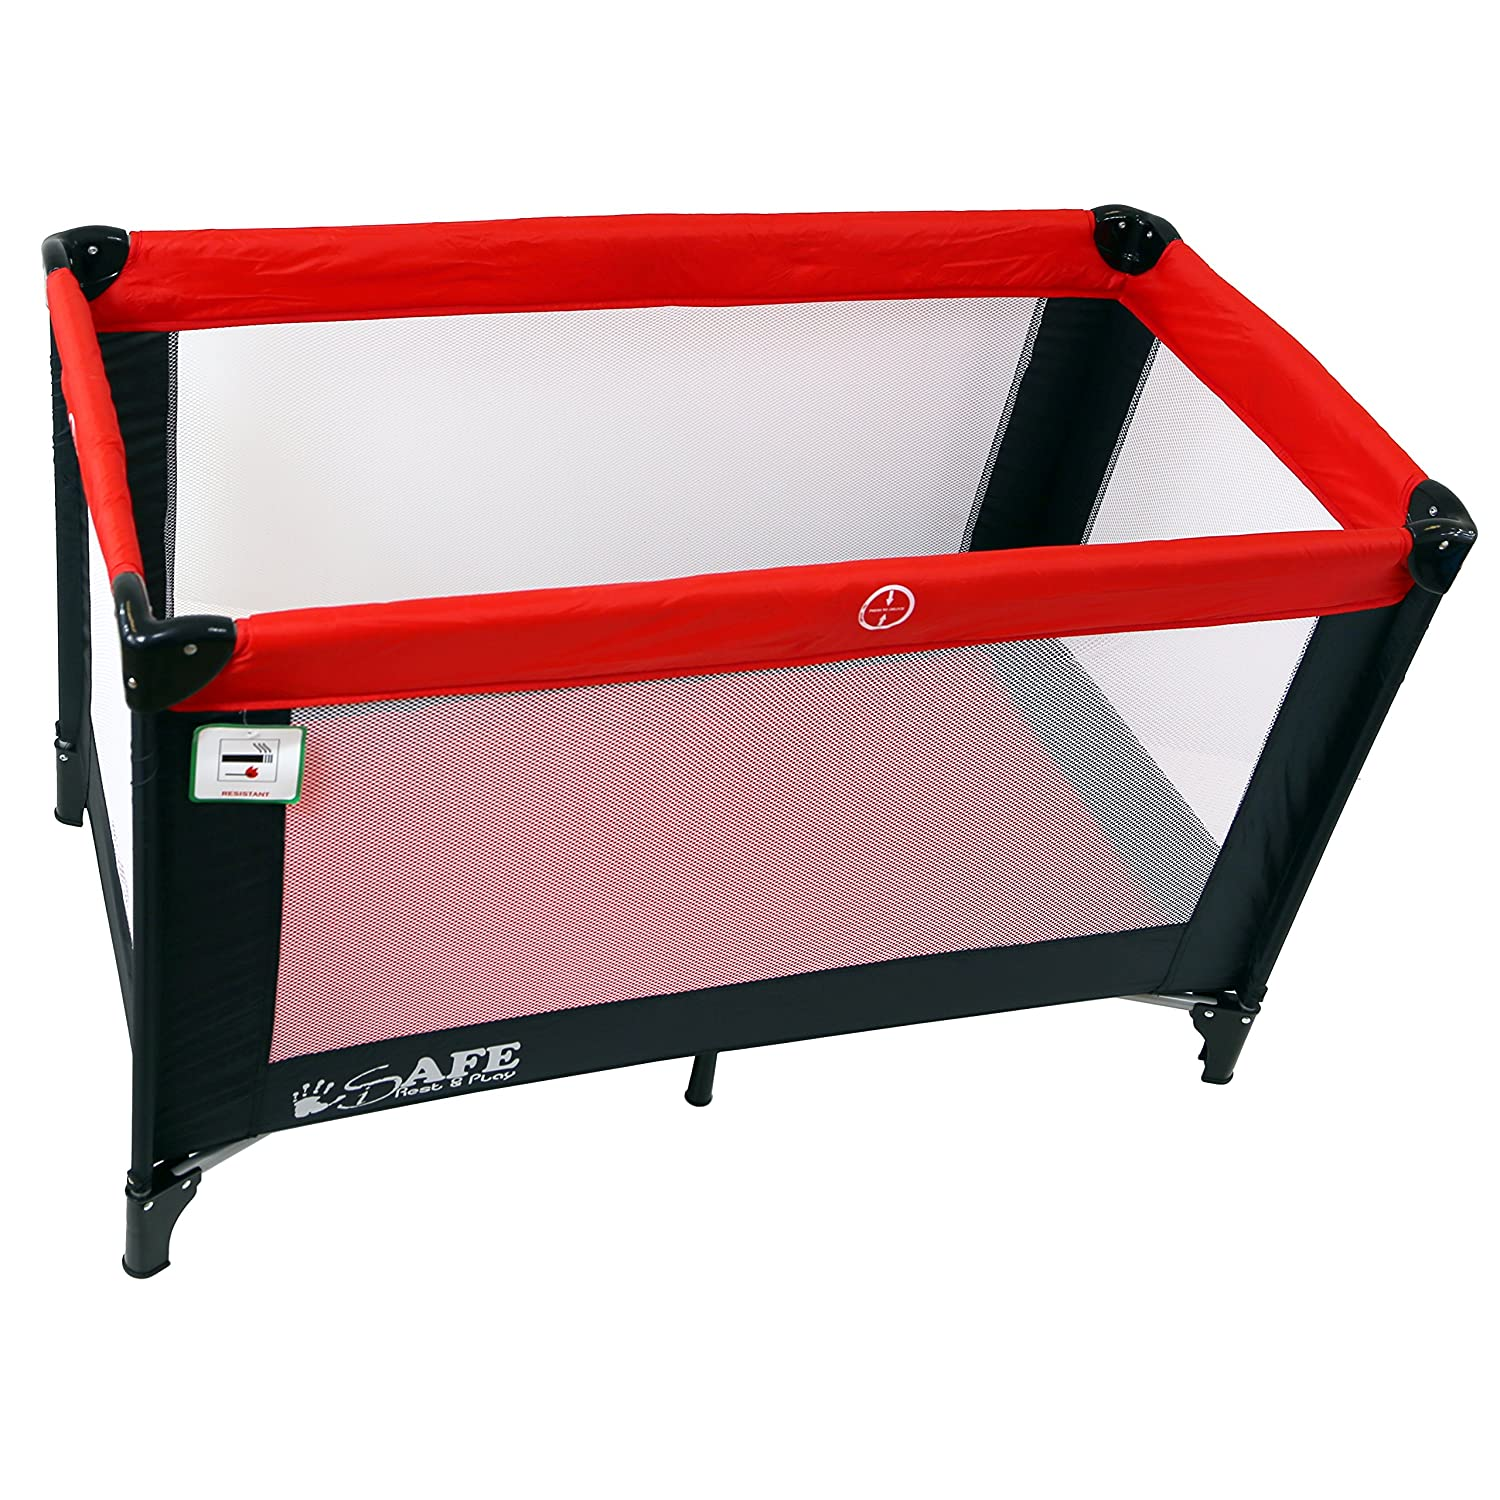 new styles 96137 e1fbc iSafe Rest & Play Luxury Travel Cot/Playpen - Warm Red (Black/Red) 120 cm x  60 cm